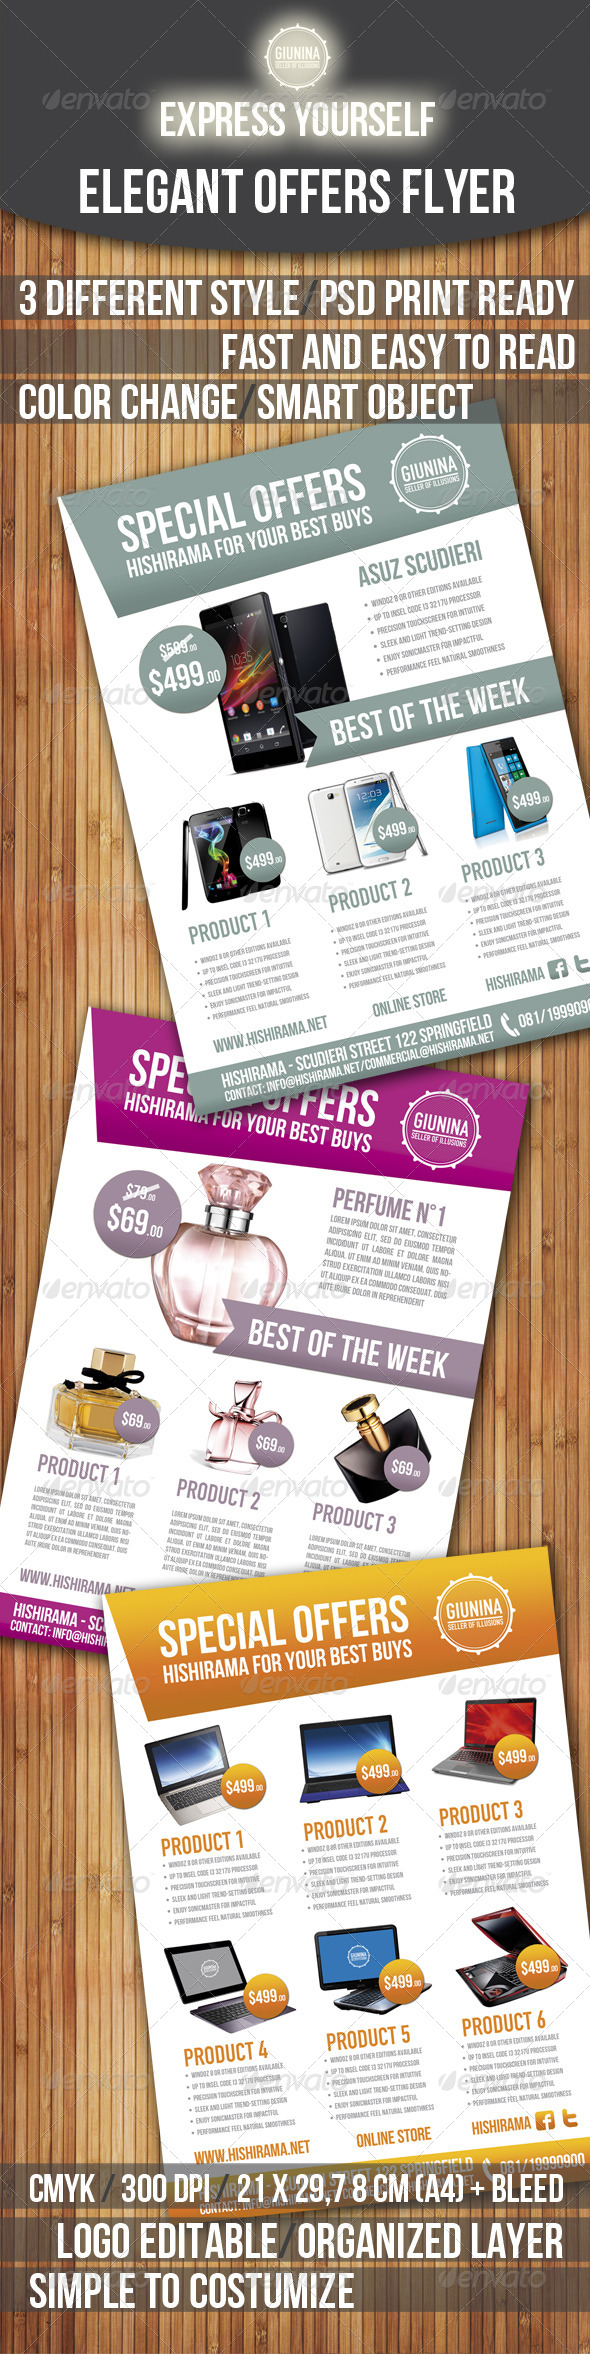 Elegant Offers Flyer - Commerce Flyers